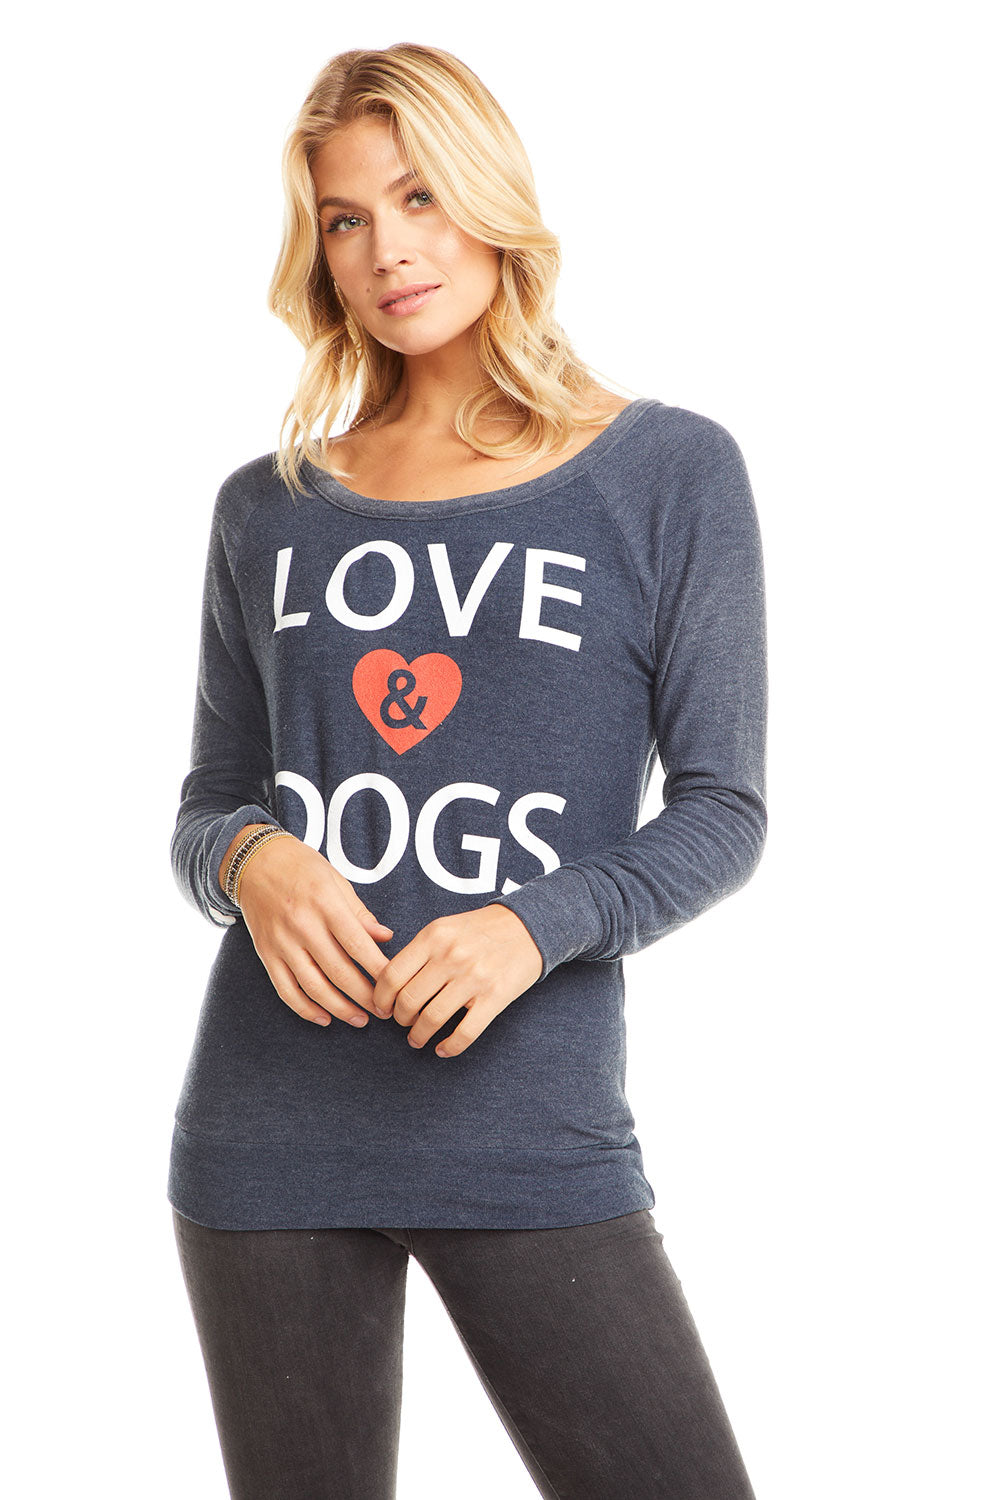 Love And Dogs, WOMENS, chaserbrand.com,chaser clothing,chaser apparel,chaser los angeles